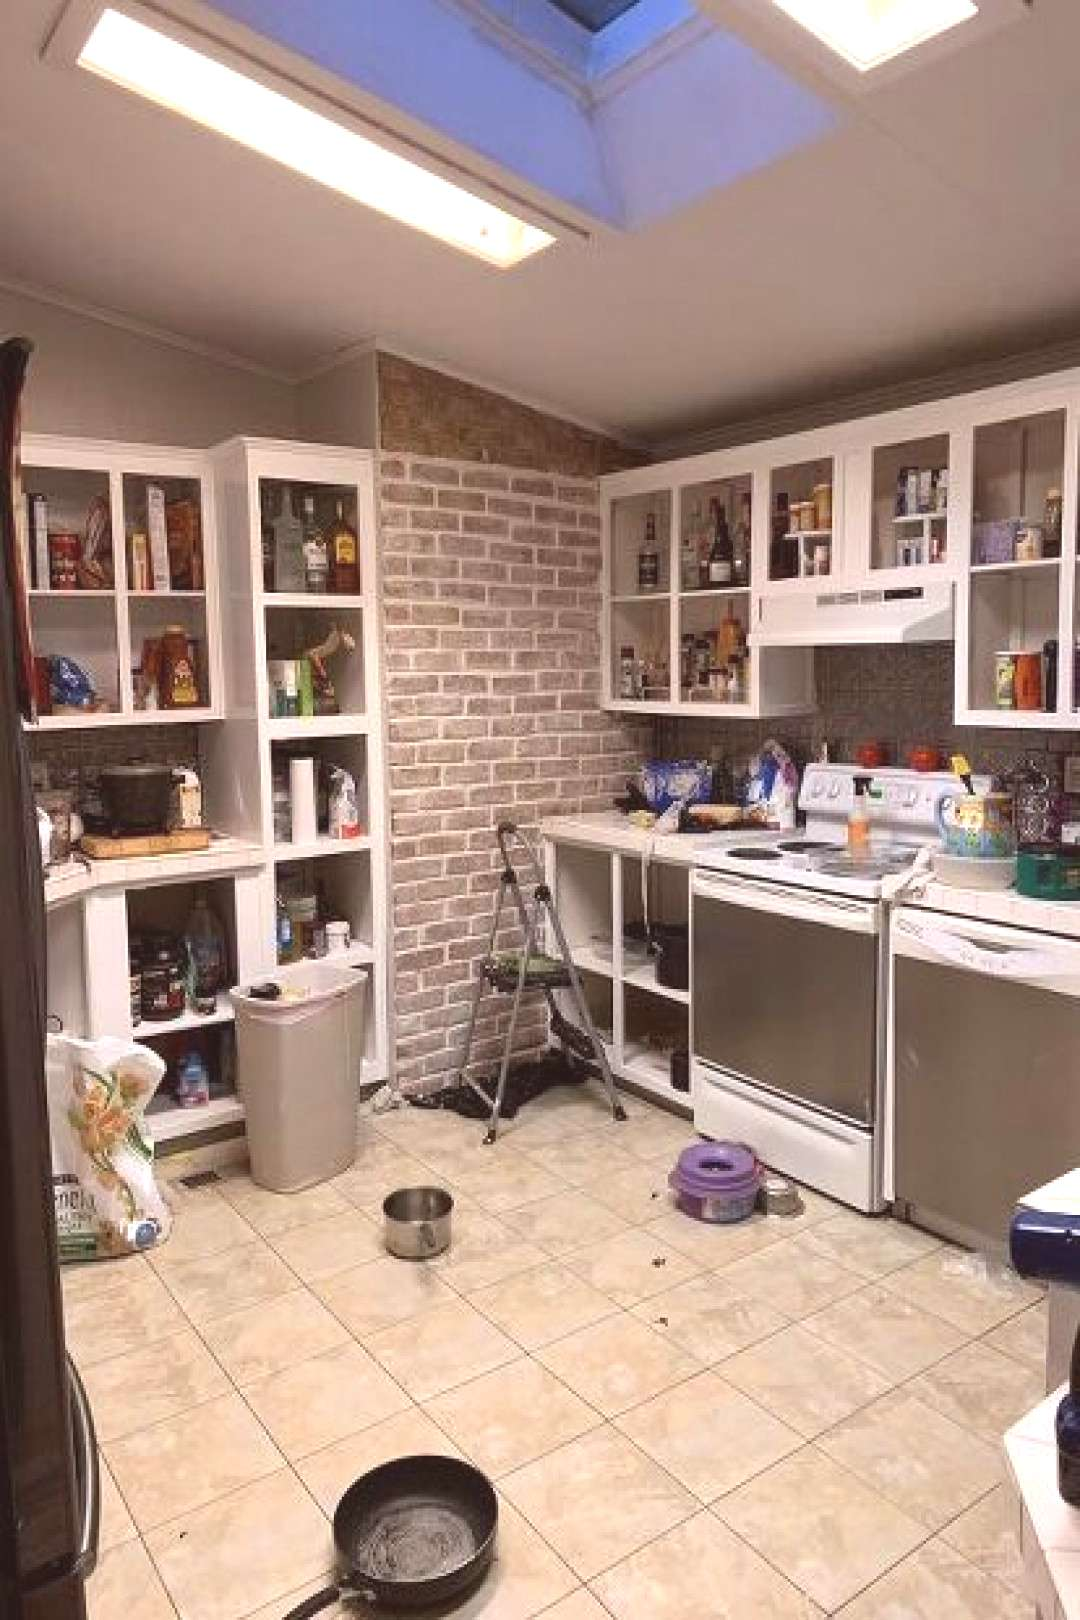 Does your kitchen need an update? This easy kitchen cabinets DIY idea is perfect if youre looking